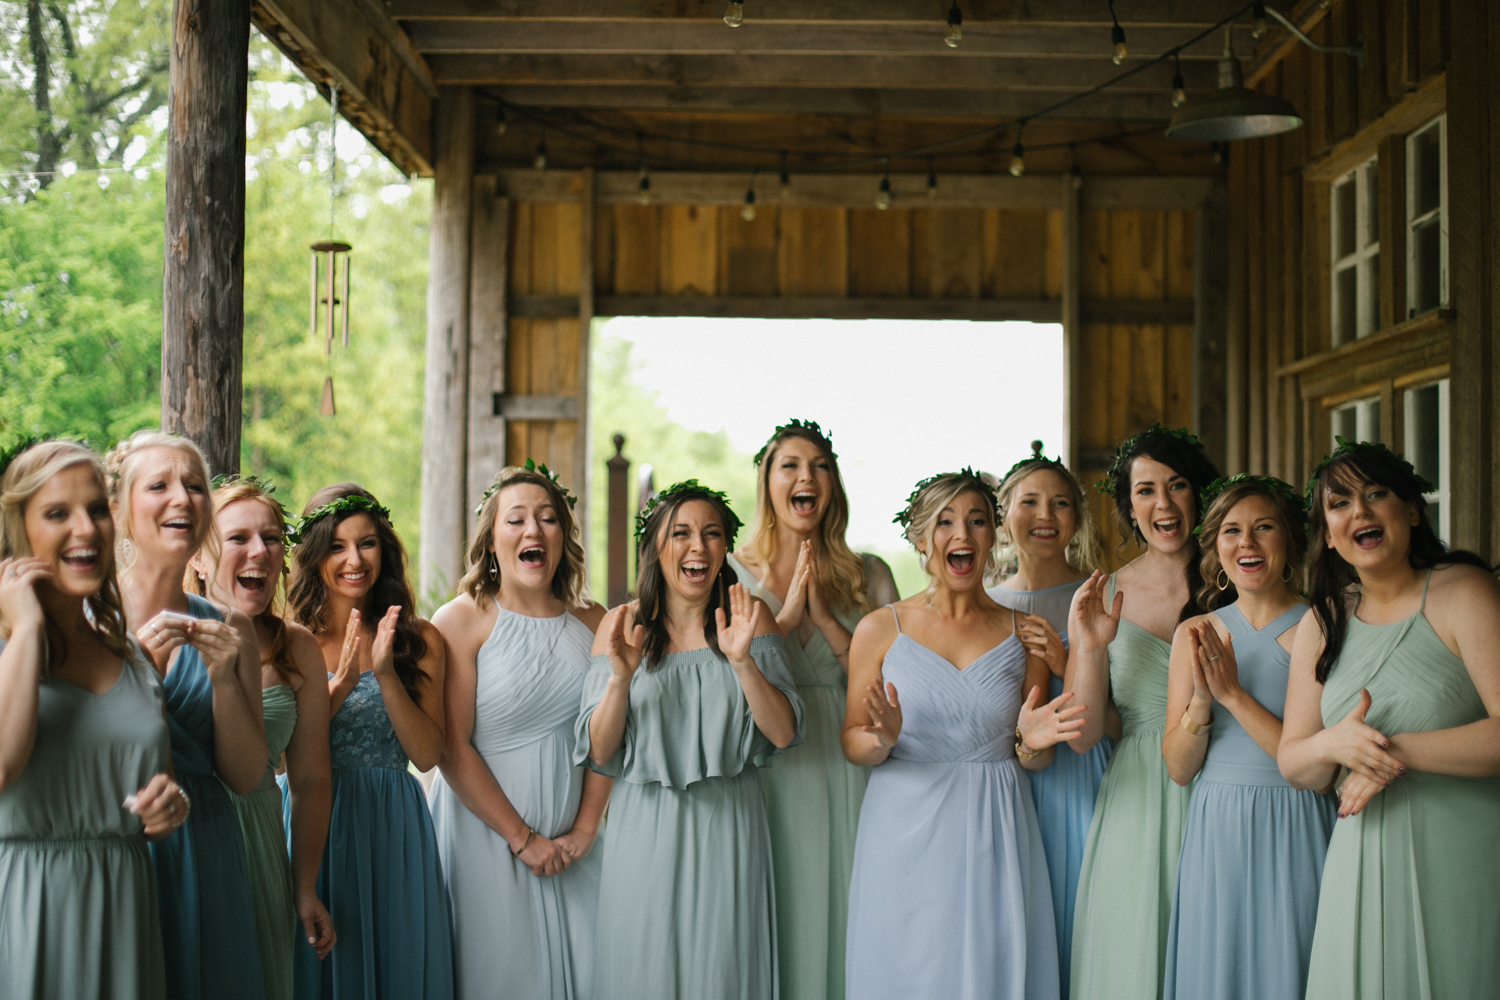 2018.05.05_SarahDillon_Wedding_Starks-0016.jpg